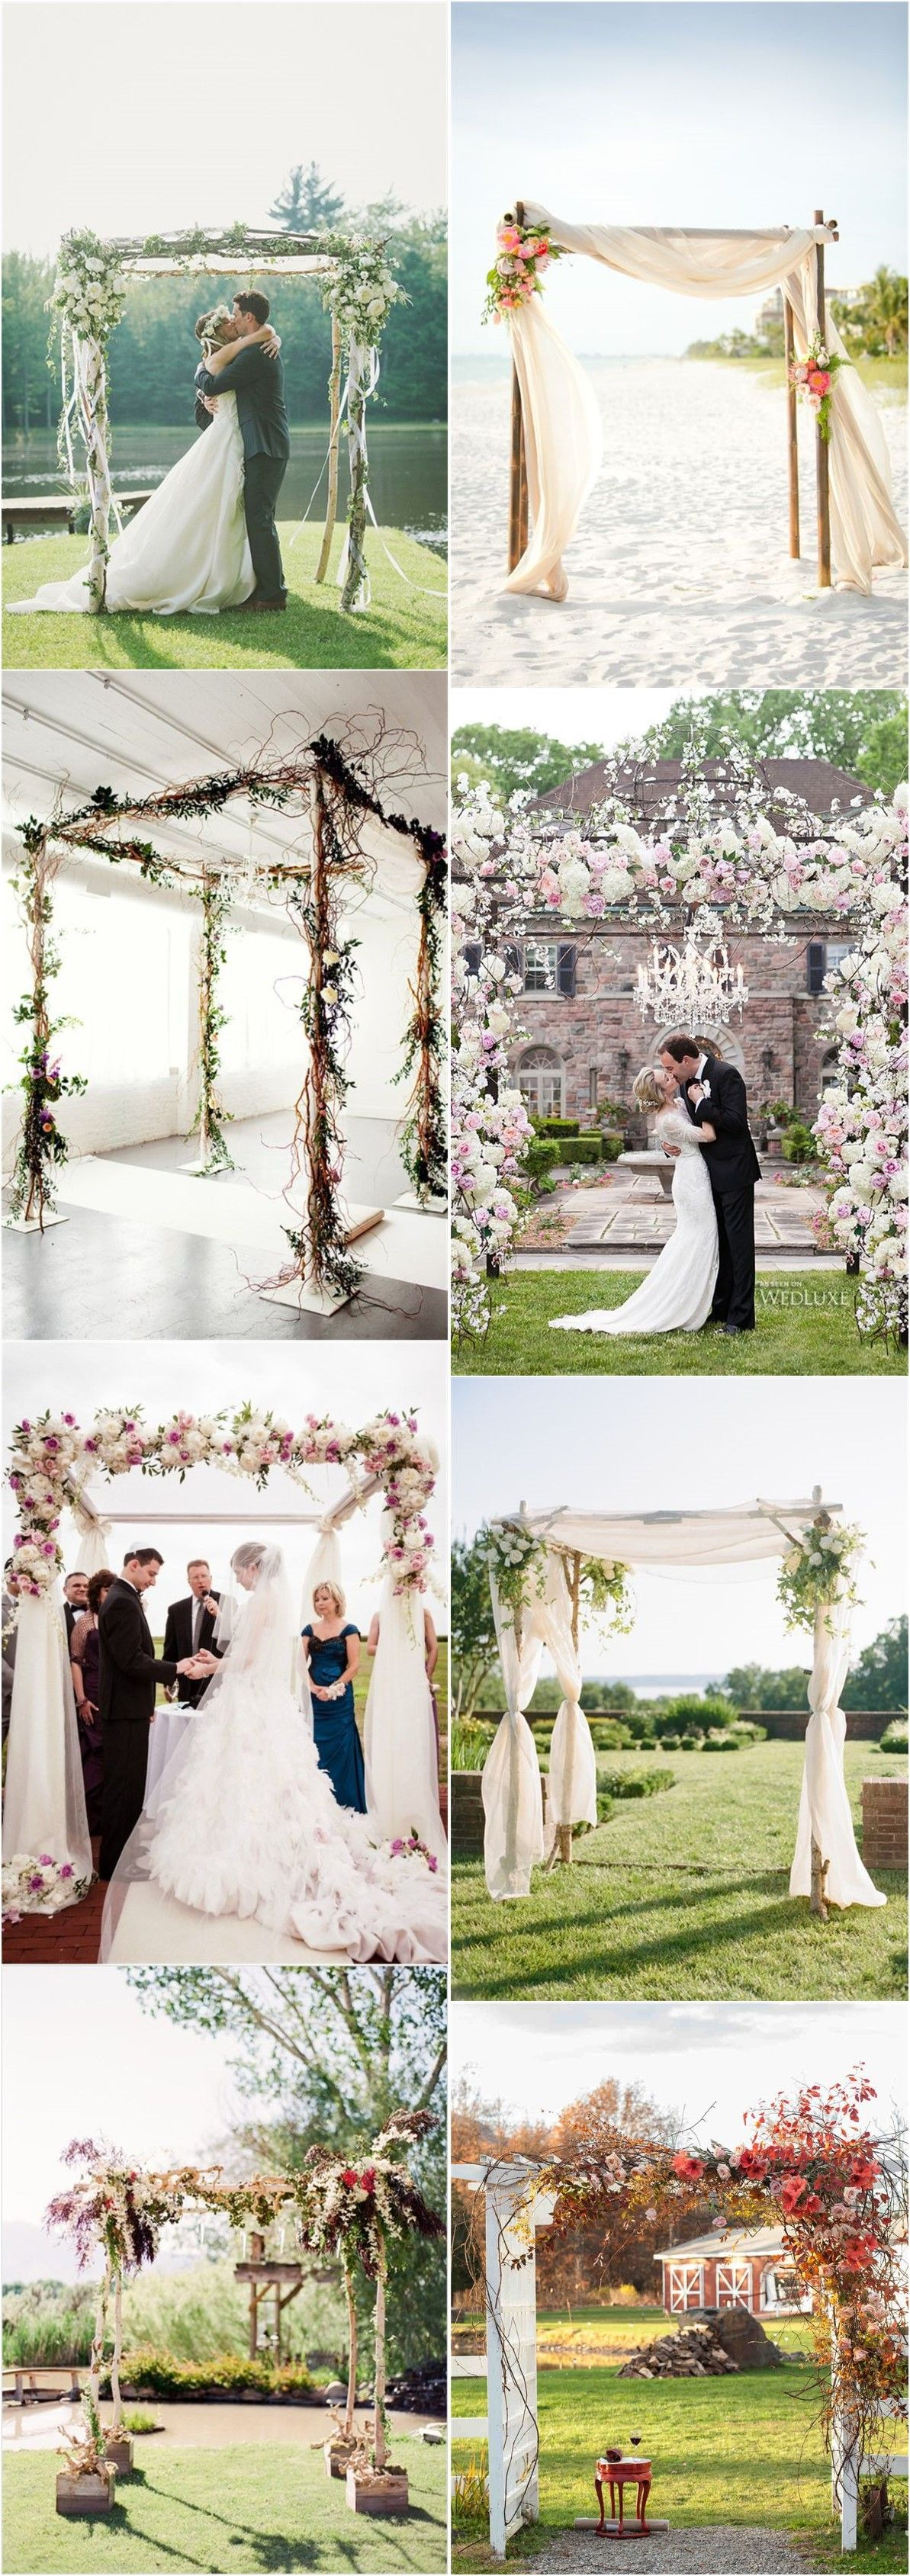 Imaginative unique floral wedding chuppah altar decoration ideas imaginative unique floral wedding chuppah altar decoration ideas junglespirit Gallery